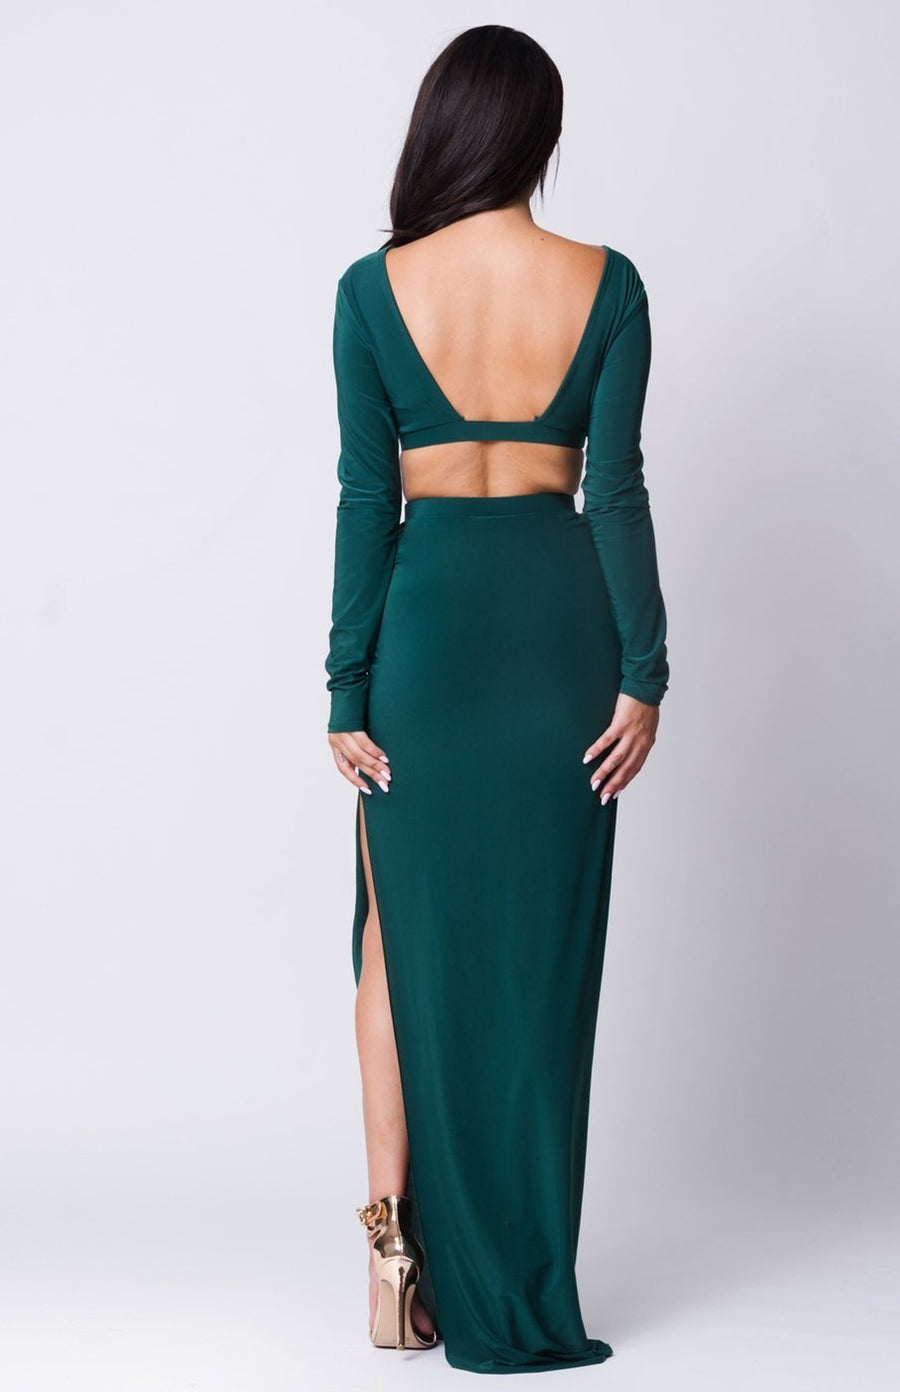 Joyden Two-Piece Maxi Dress - S / Hunter Green